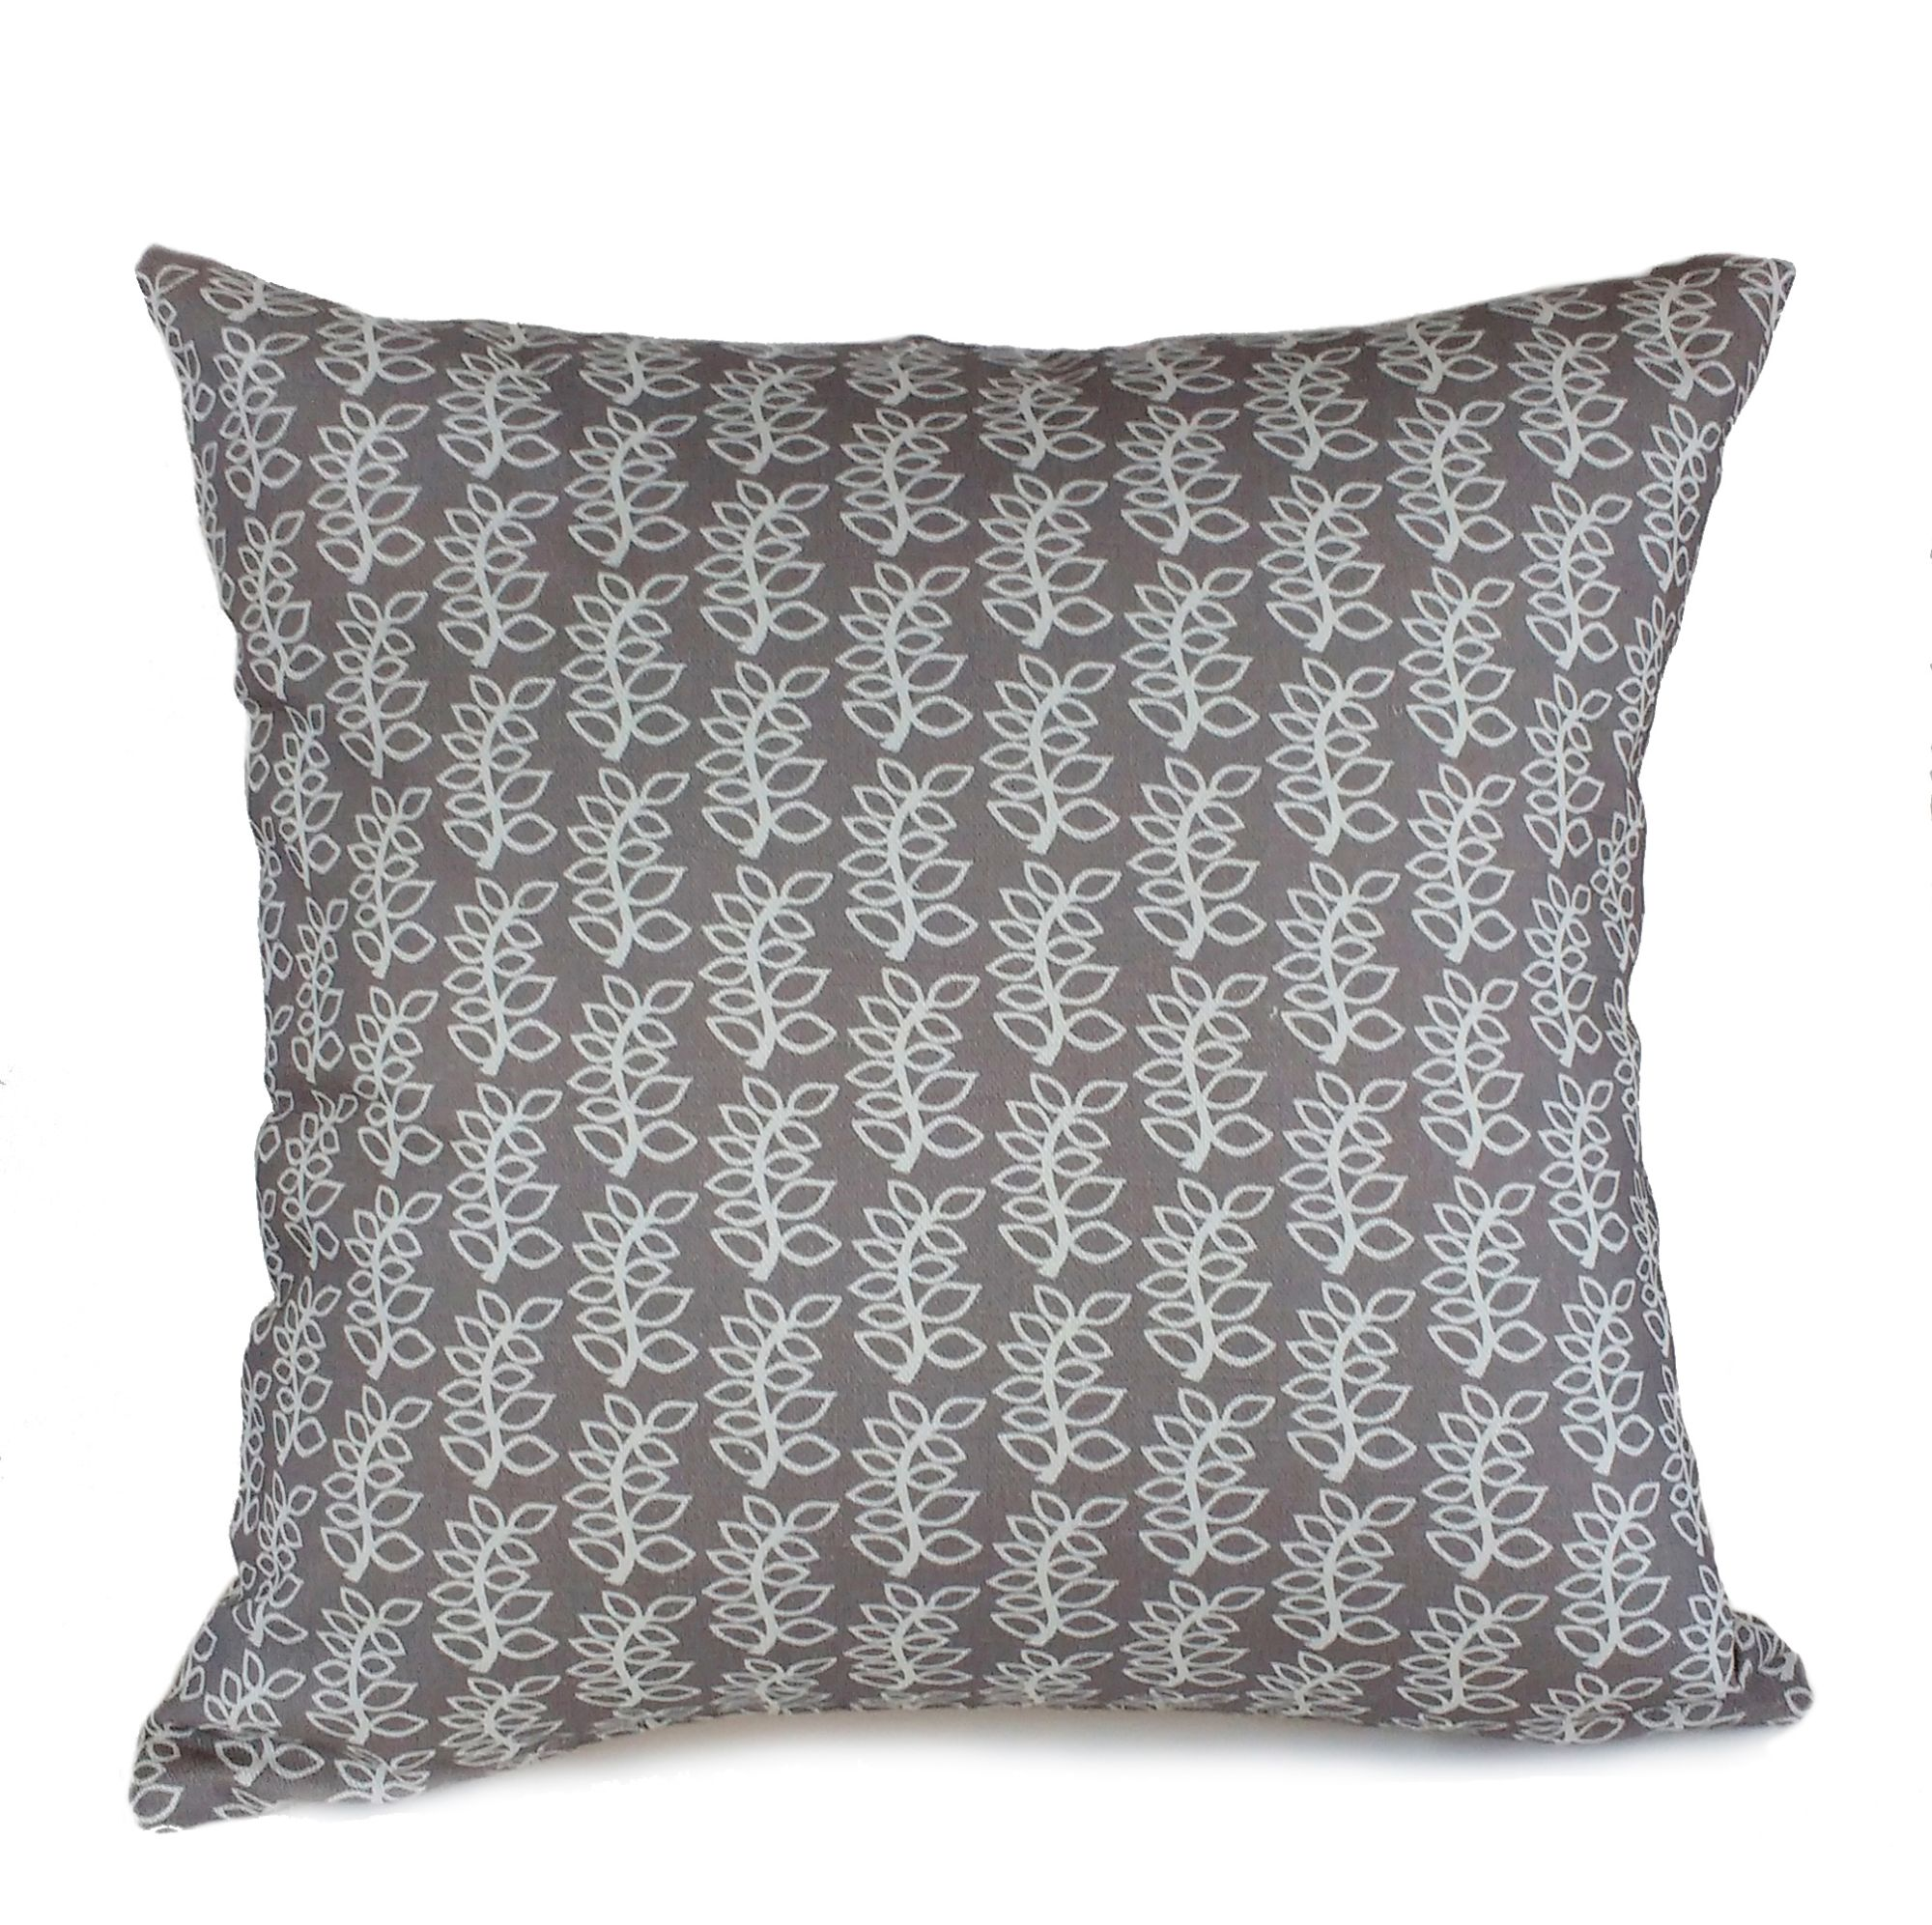 Stoney grey wavy leaves cushion